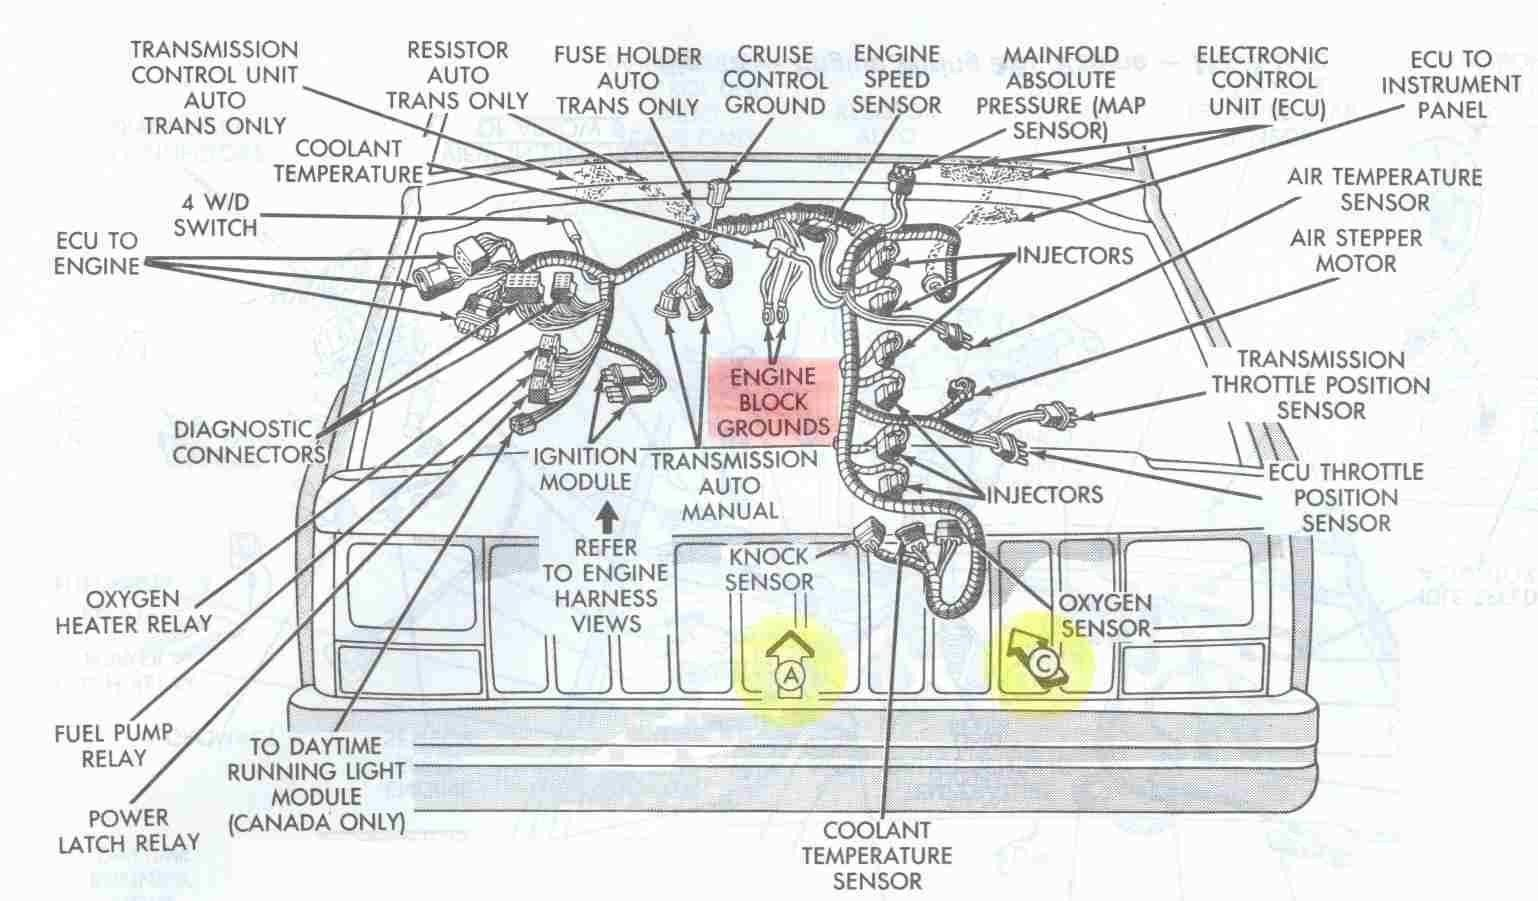 1999 Jeep Wrangler Engine Diagram Wiring Diagrams Console A Console A Chatteriedelavalleedufelin Fr